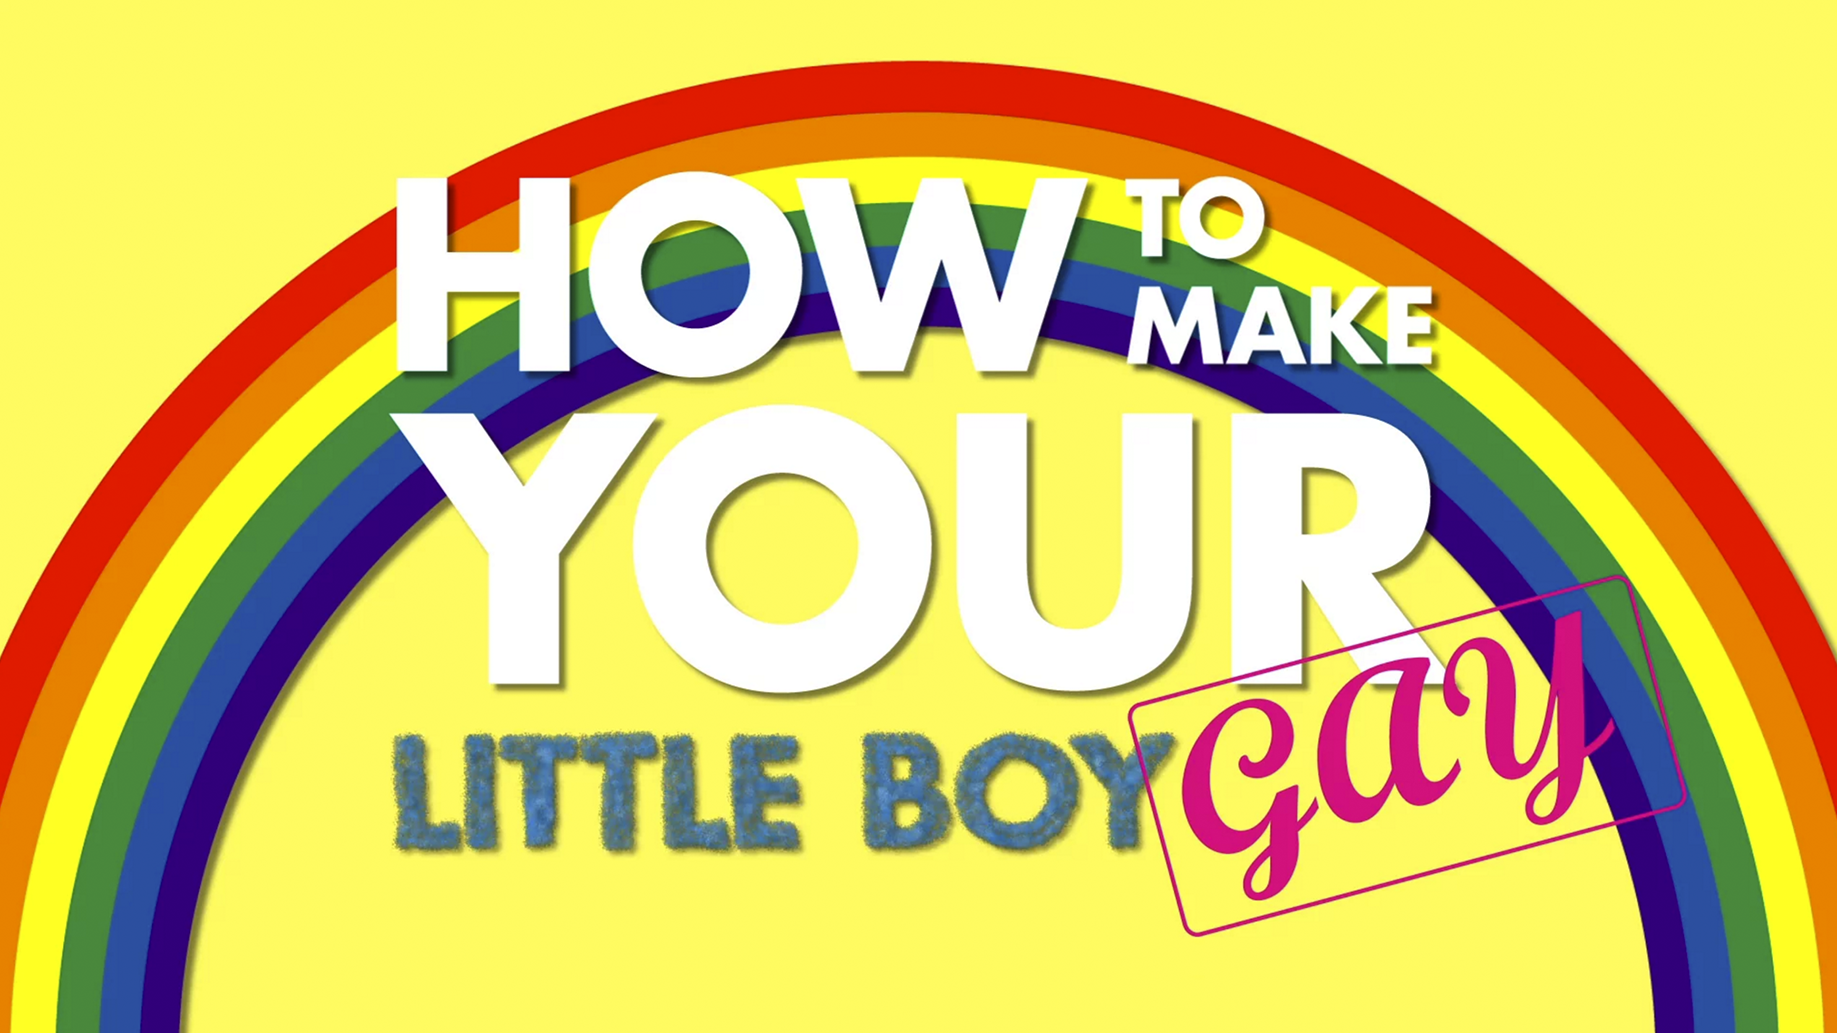 How To Make Your Little Boy Gay